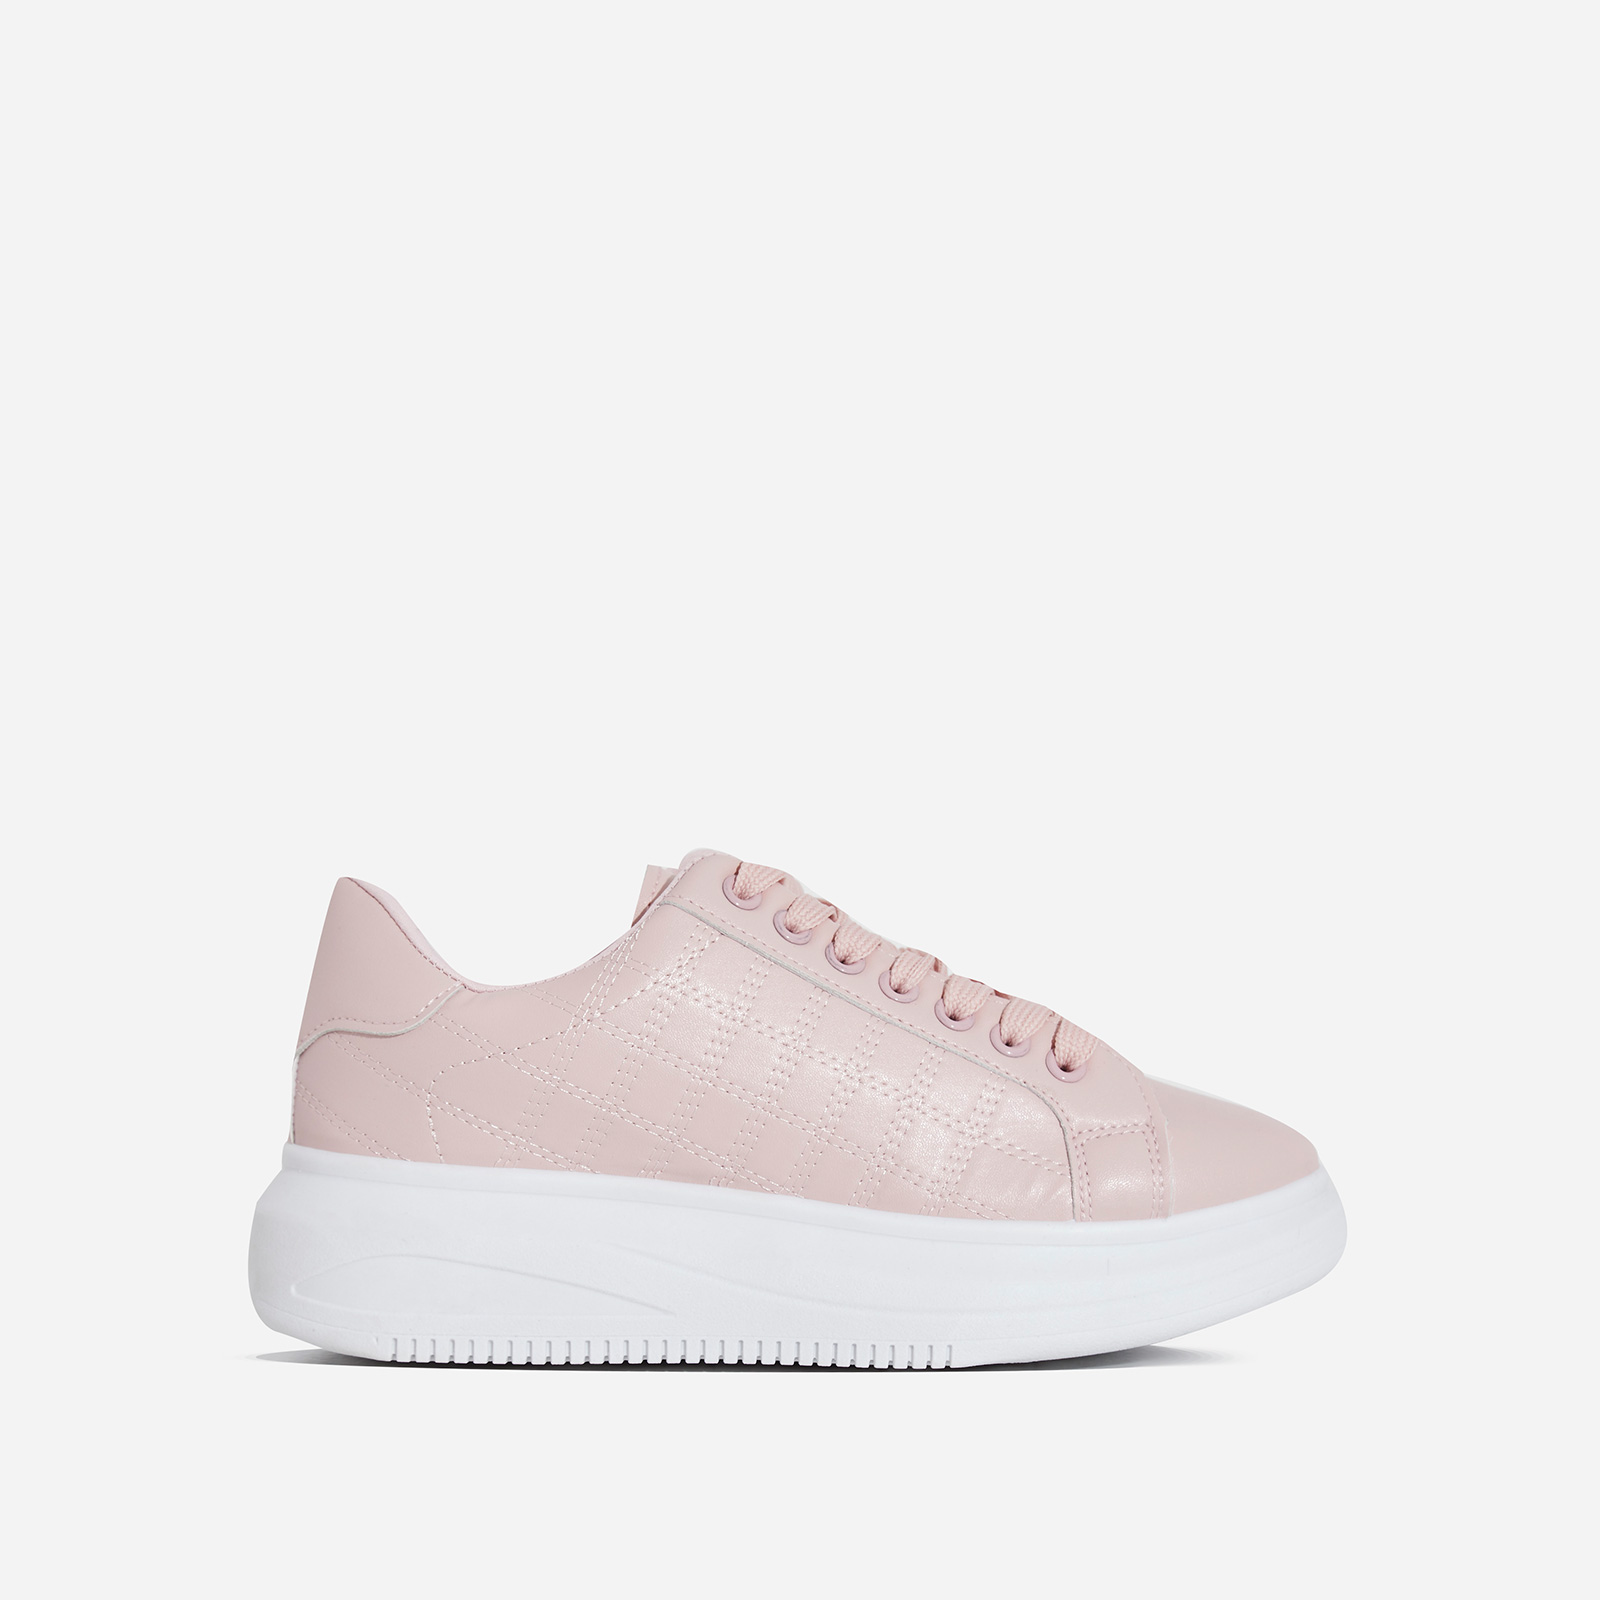 Avi Stitch Detail Chunky Sole Sneaker In Pink Faux Leather